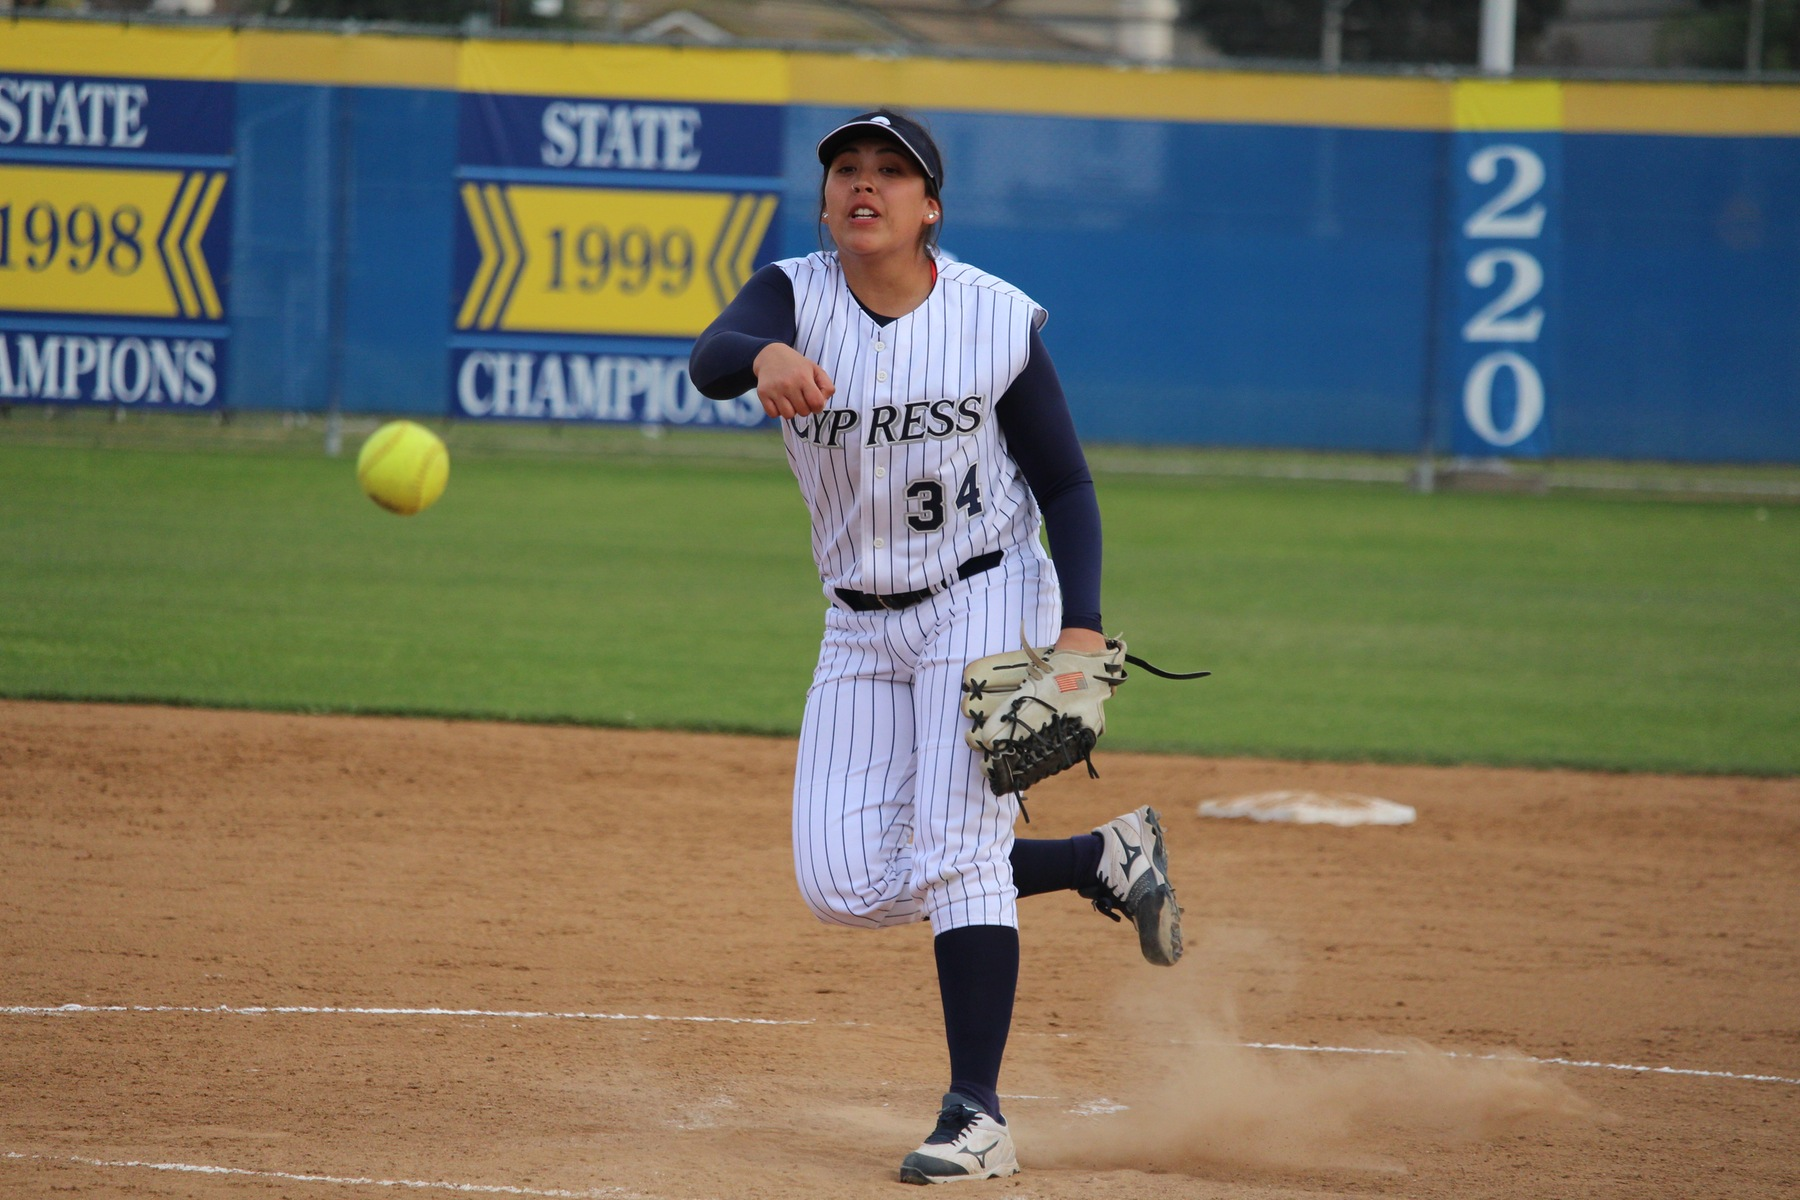 No. 1 Chargers Outpace Gauchos for 62nd Consecutive Win, 13-4